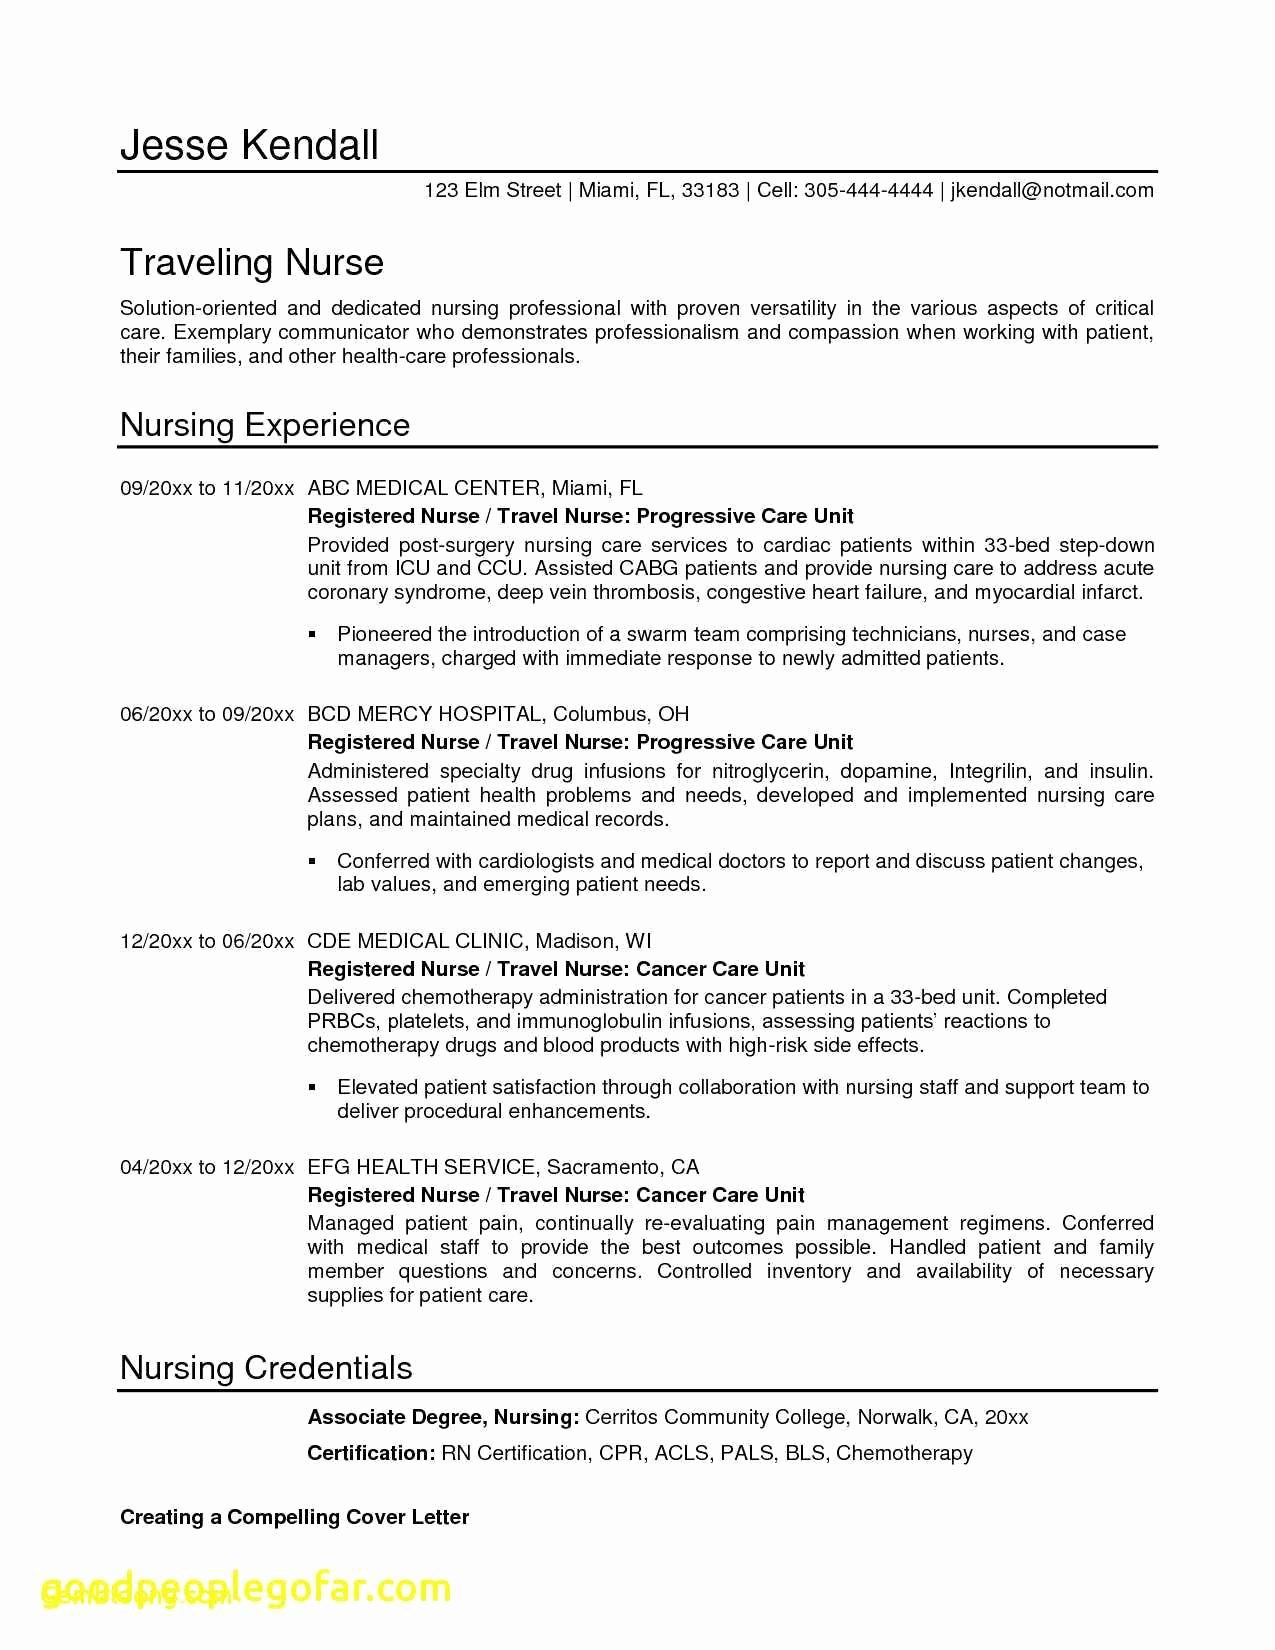 Help Writing Professional Resume - 18 How to Write A Professional Resume